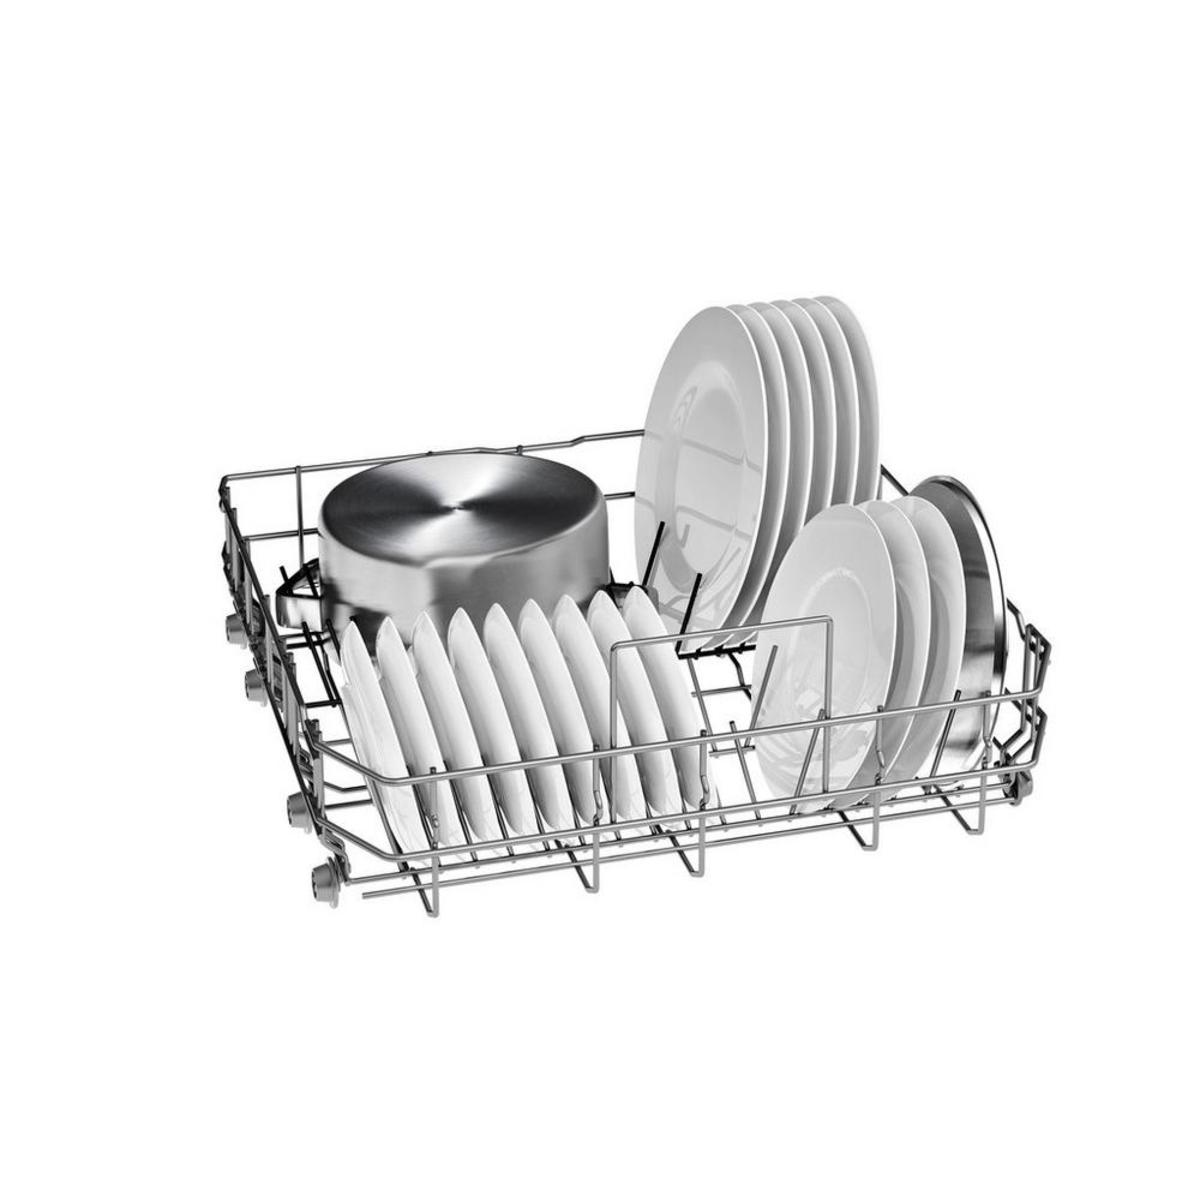 Image of Bosch SMS2ITW08G Serie 2 60cm Free-standing Dishwasher, White